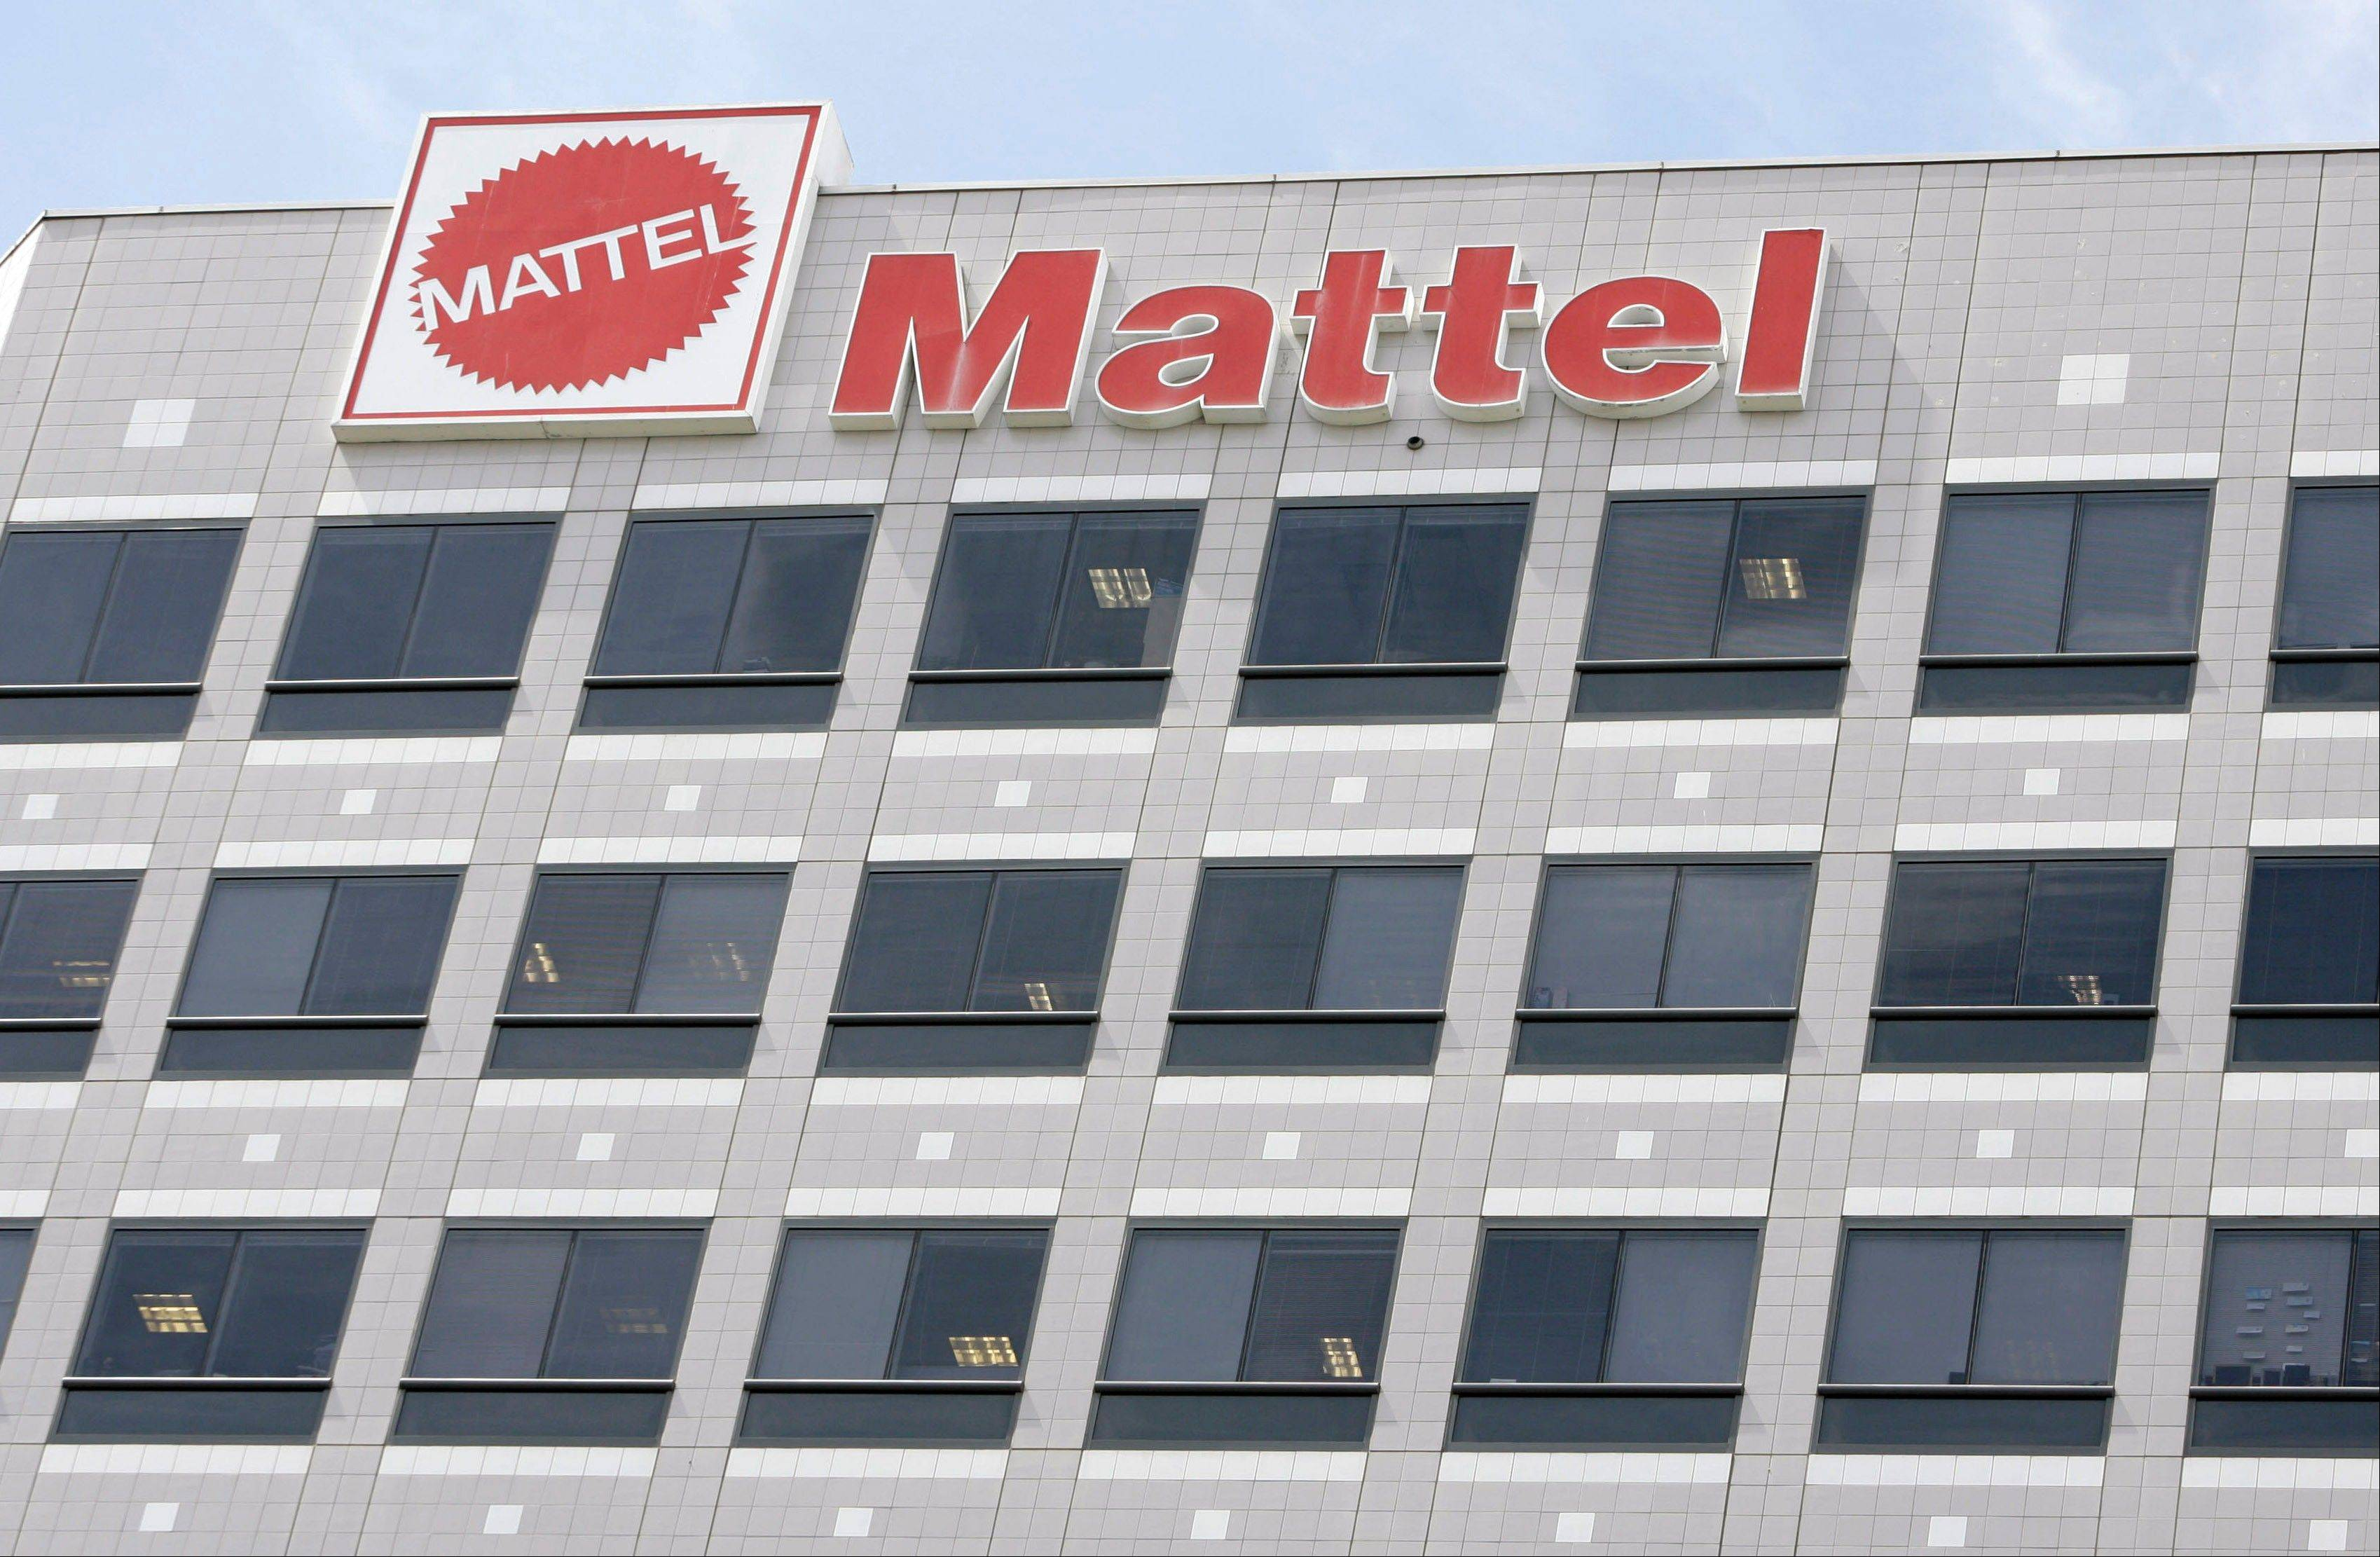 Barbie maker Mattel Inc.�s fourth-quarter net income fell 17 percent, weighed down by a litigation charge. Its performance missed Wall Street�s expectations for the critical holiday period.